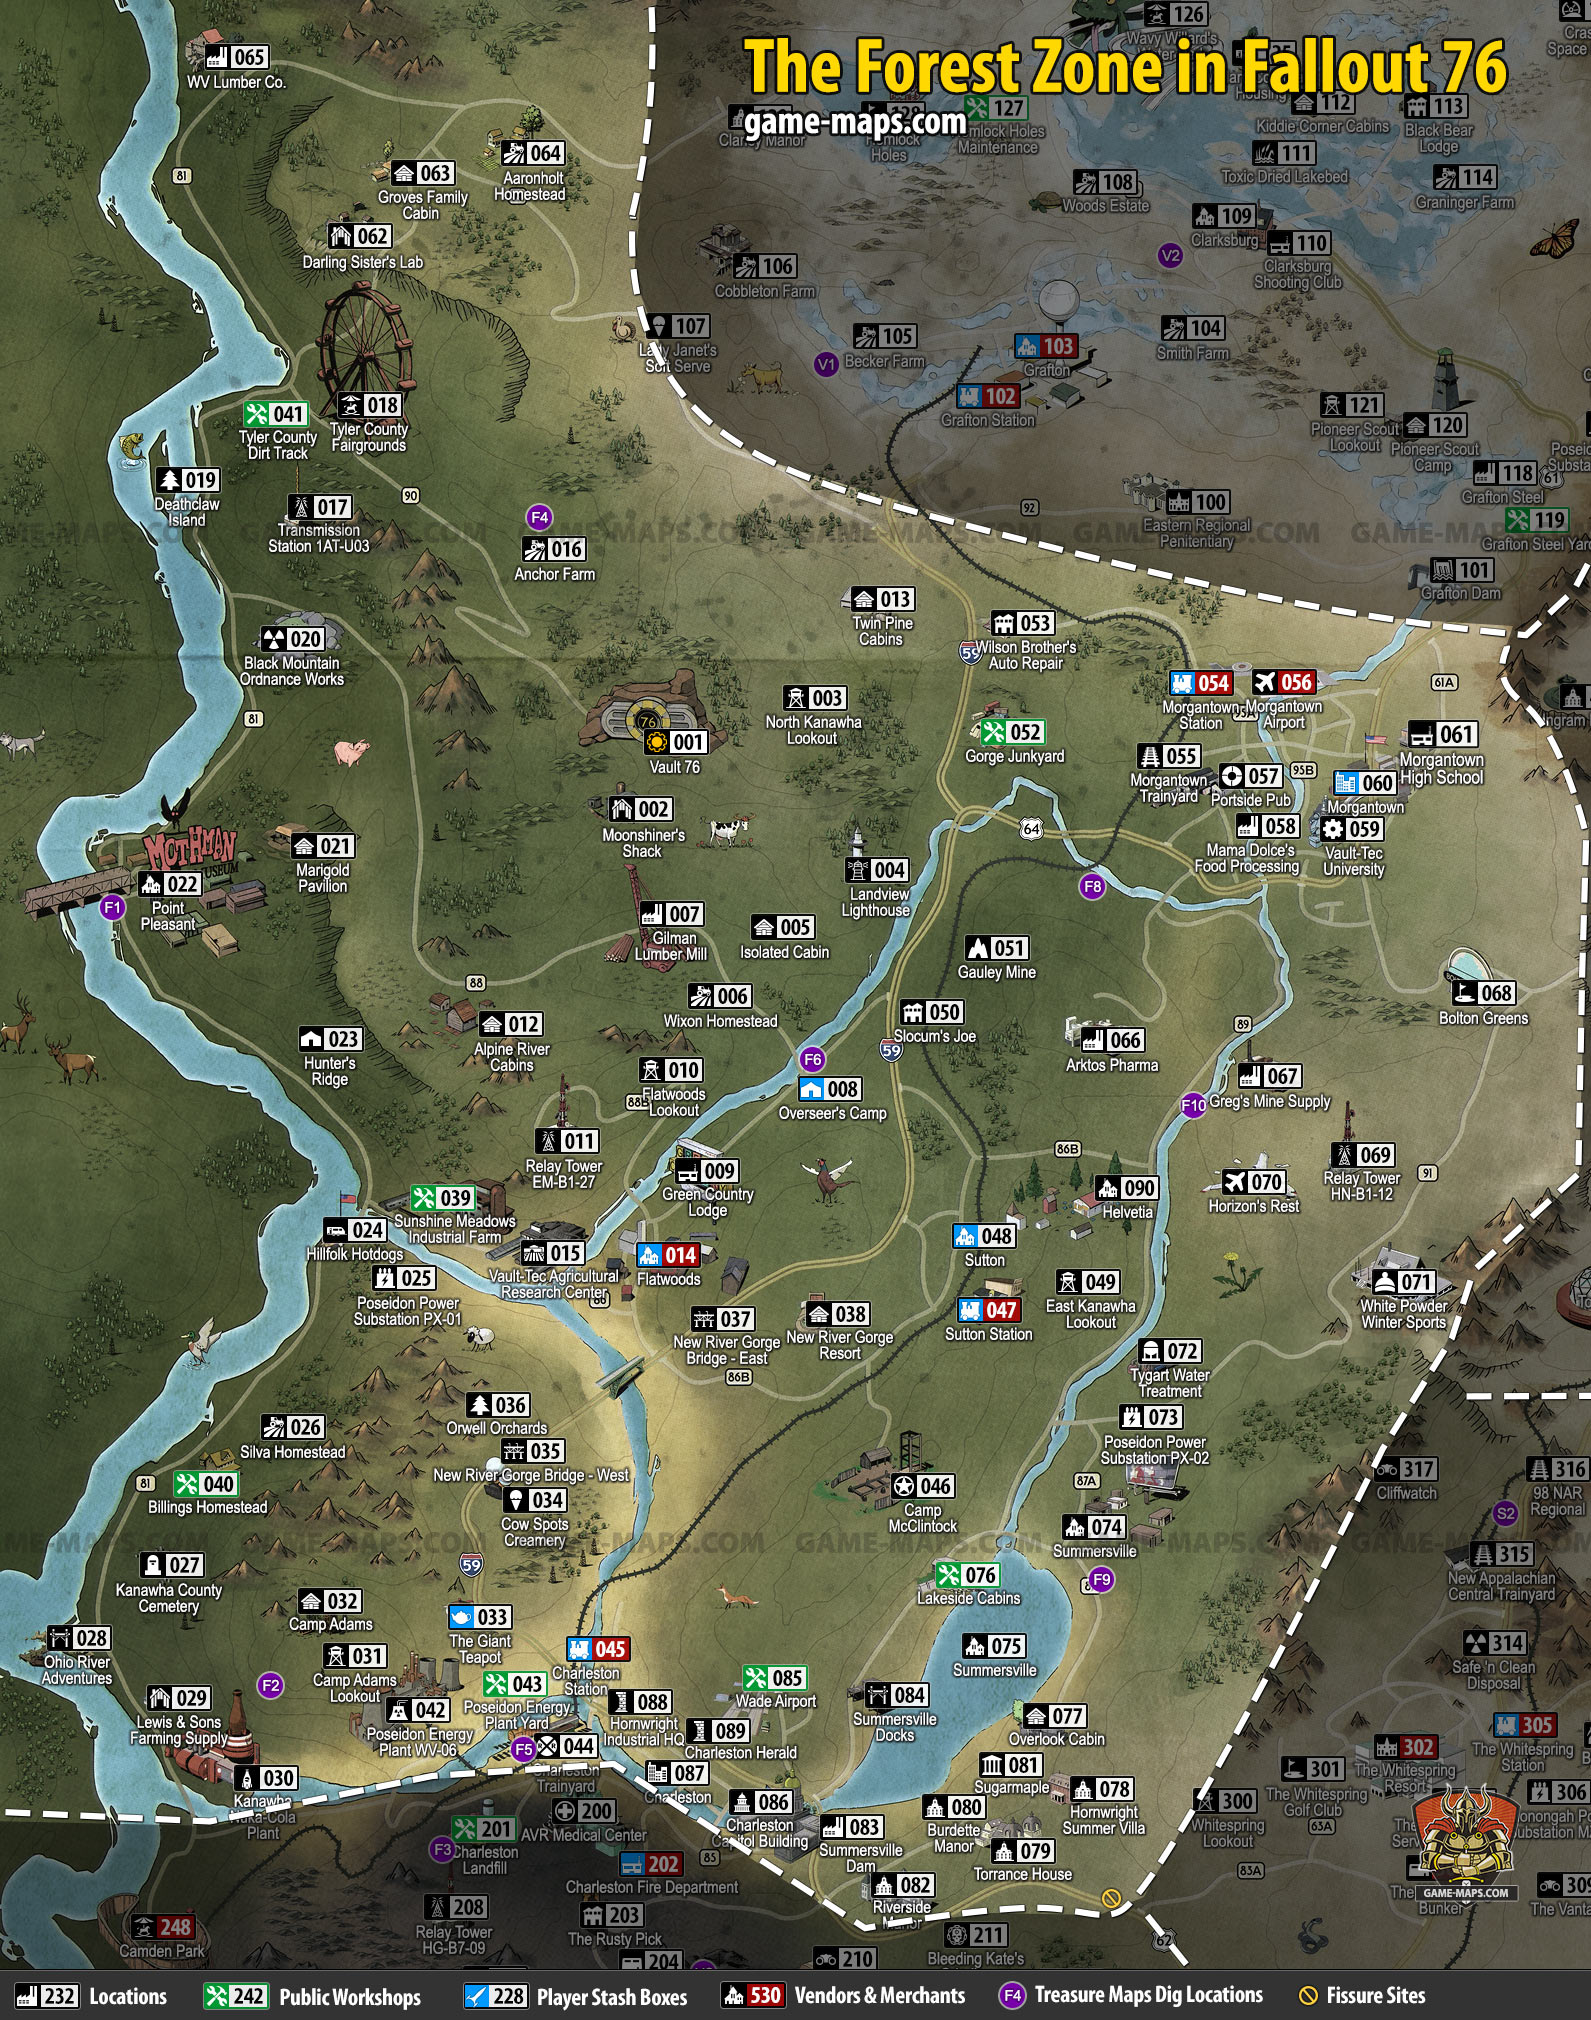 Fallout 4 Us Map.The Forest Map For Fallout 76 Game Maps Com